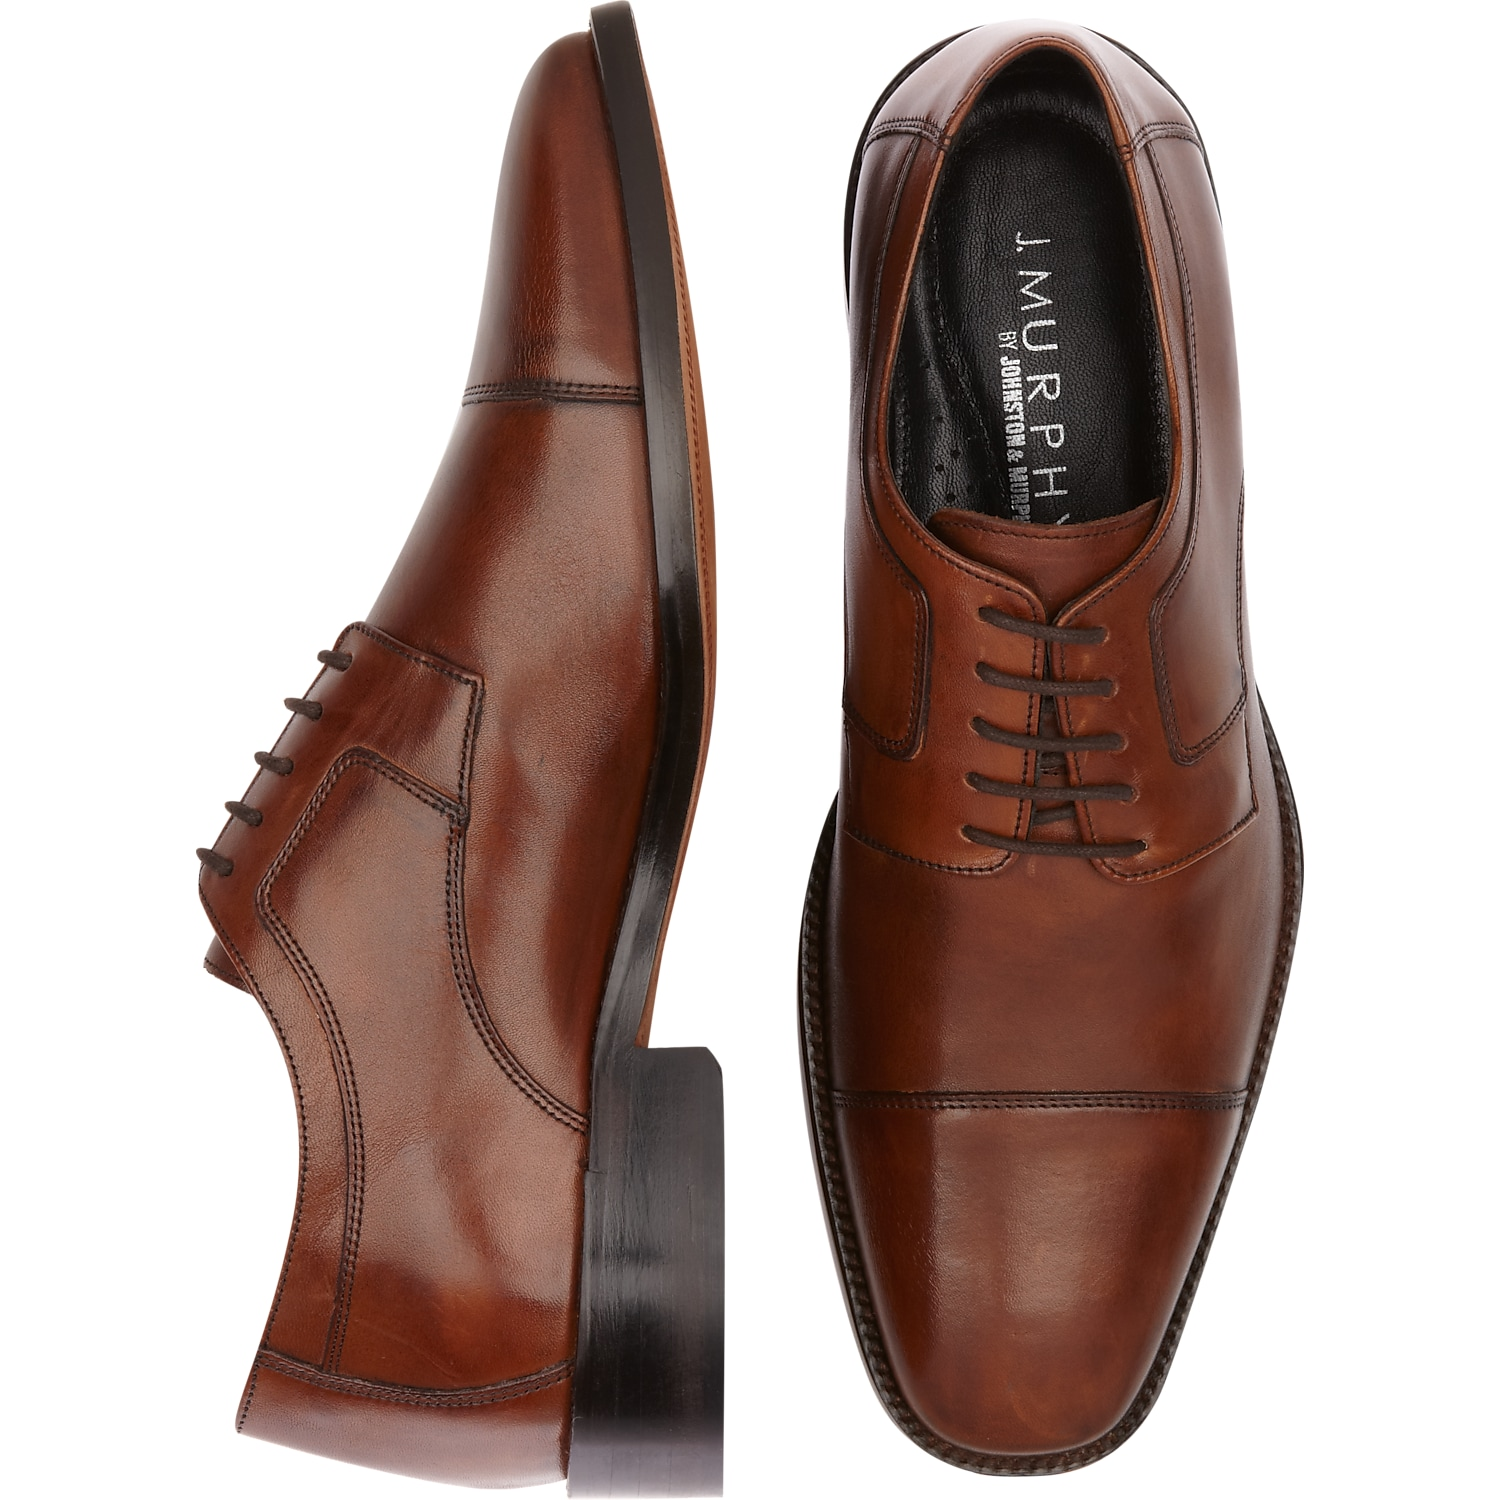 Good Mens Dress Shoe Brands